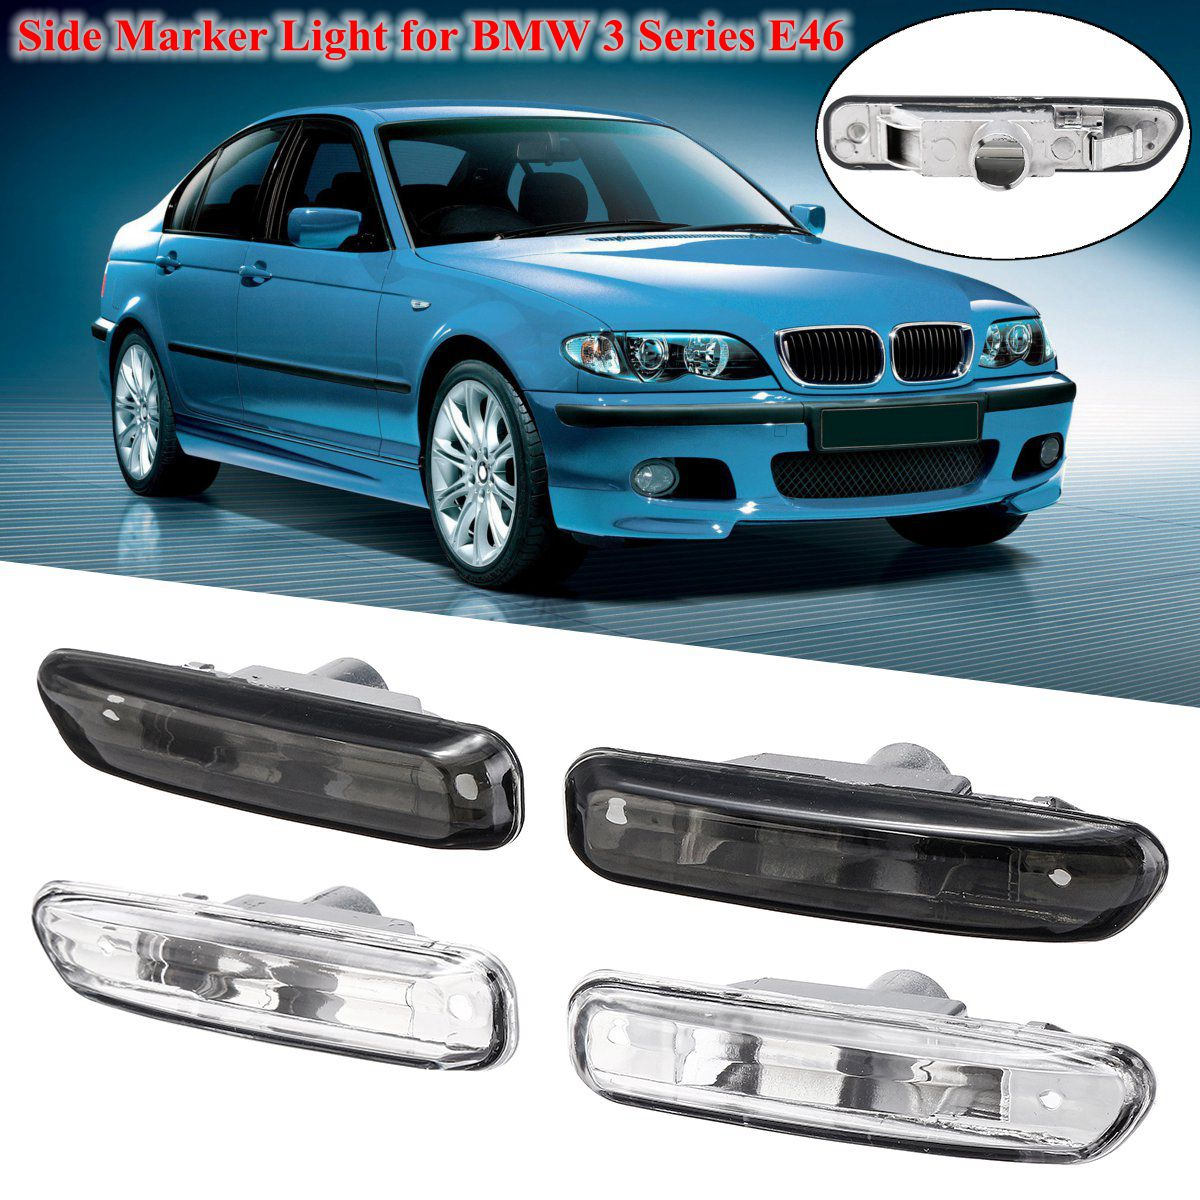 For BMW 3 Series E46 316I 318I 325I X3 E83 E90 4D/2D 1999-2003 1 Pair Turn Indicator Side Marker Lamp Lights Turn Signal LightFor BMW 3 Series E46 316I 318I 325I X3 E83 E90 4D/2D 1999-2003 1 Pair Turn Indicator Side Marker Lamp Lights Turn Signal Light